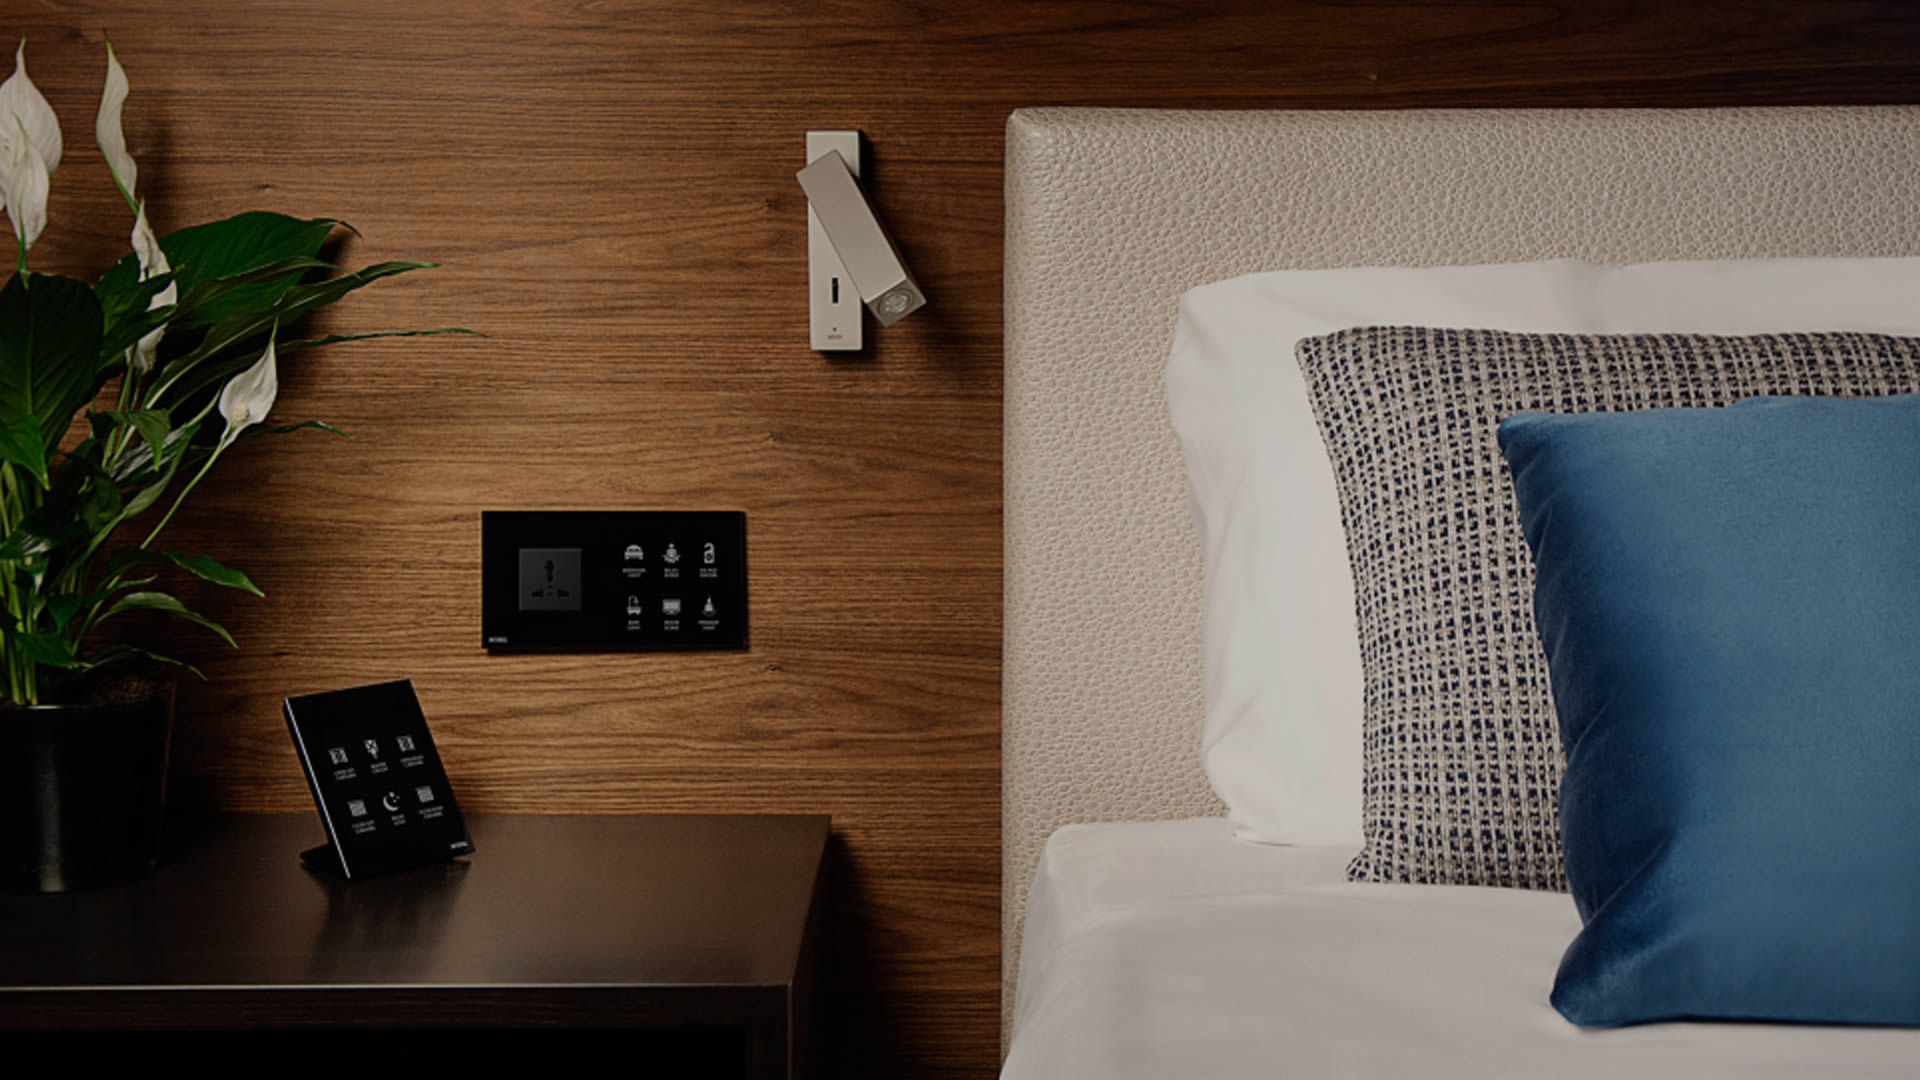 Guest room management systems